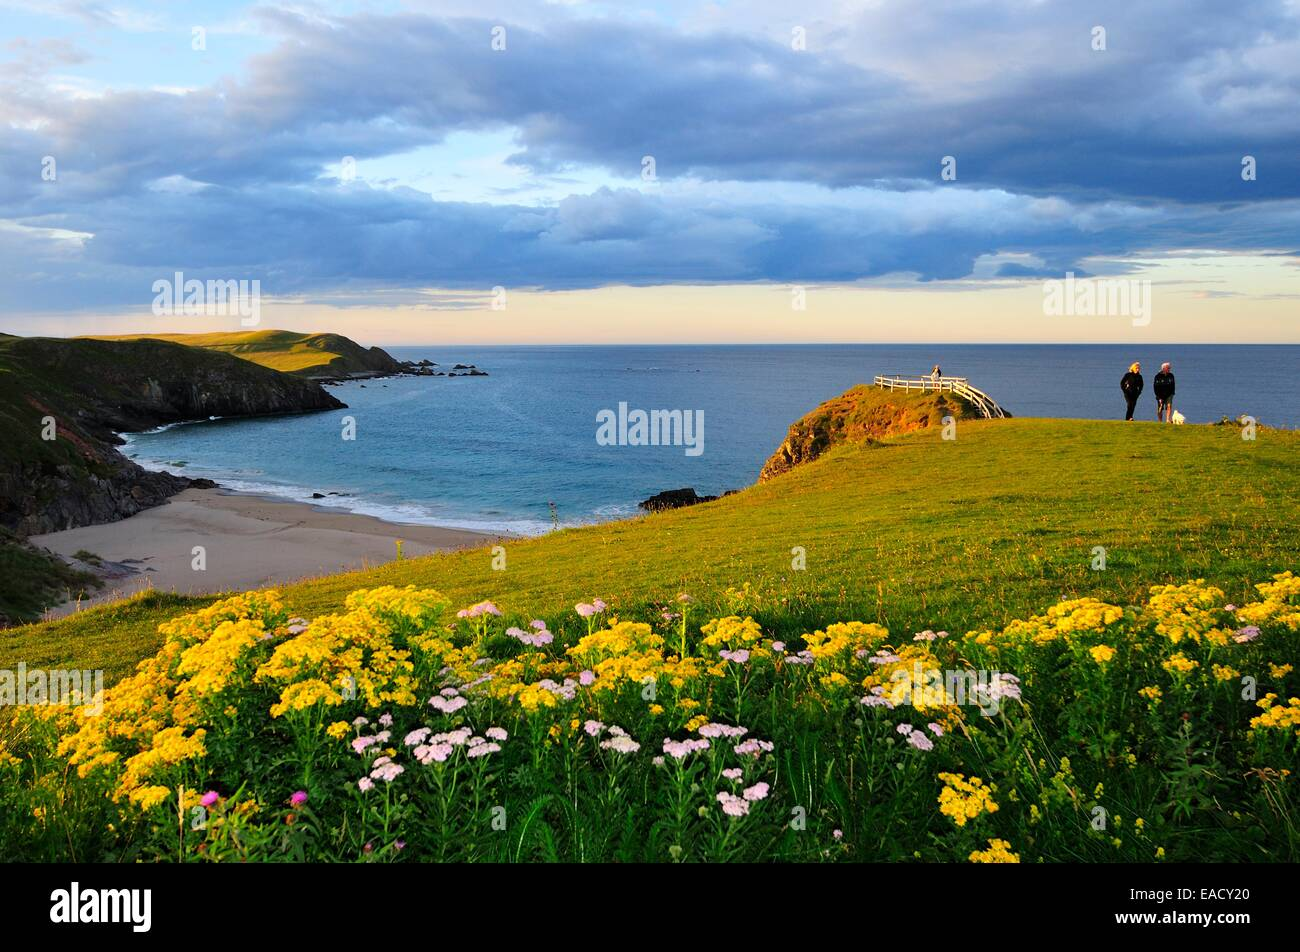 Meadow near the viewpoint overlooking the beach of Sango Bay, Durness, Caithness, Sutherland and Easter Ross, Scotland - Stock Image